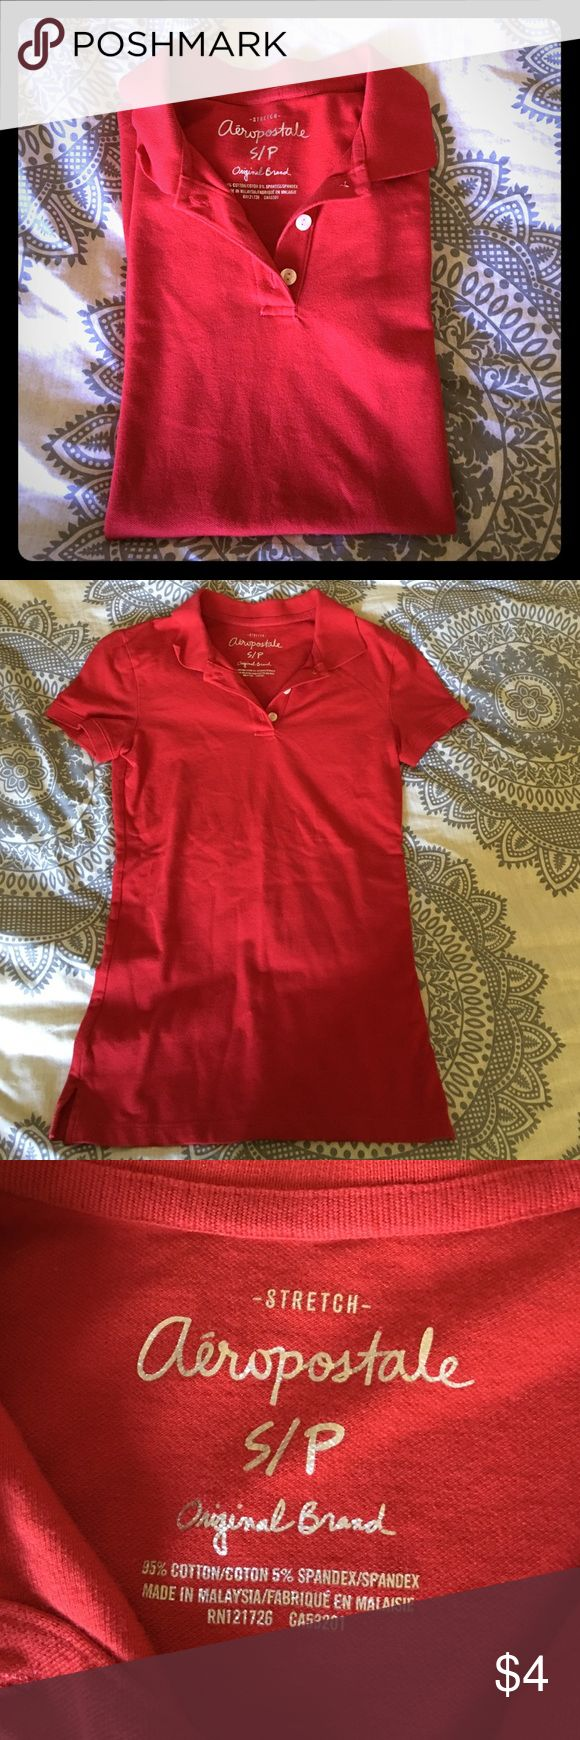 Red Aeropostale polo Barely used red polo. Still looks new, only worn once or twice to an interview! No rips or fading! Aeropostale Tops Tees - Short Sleeve